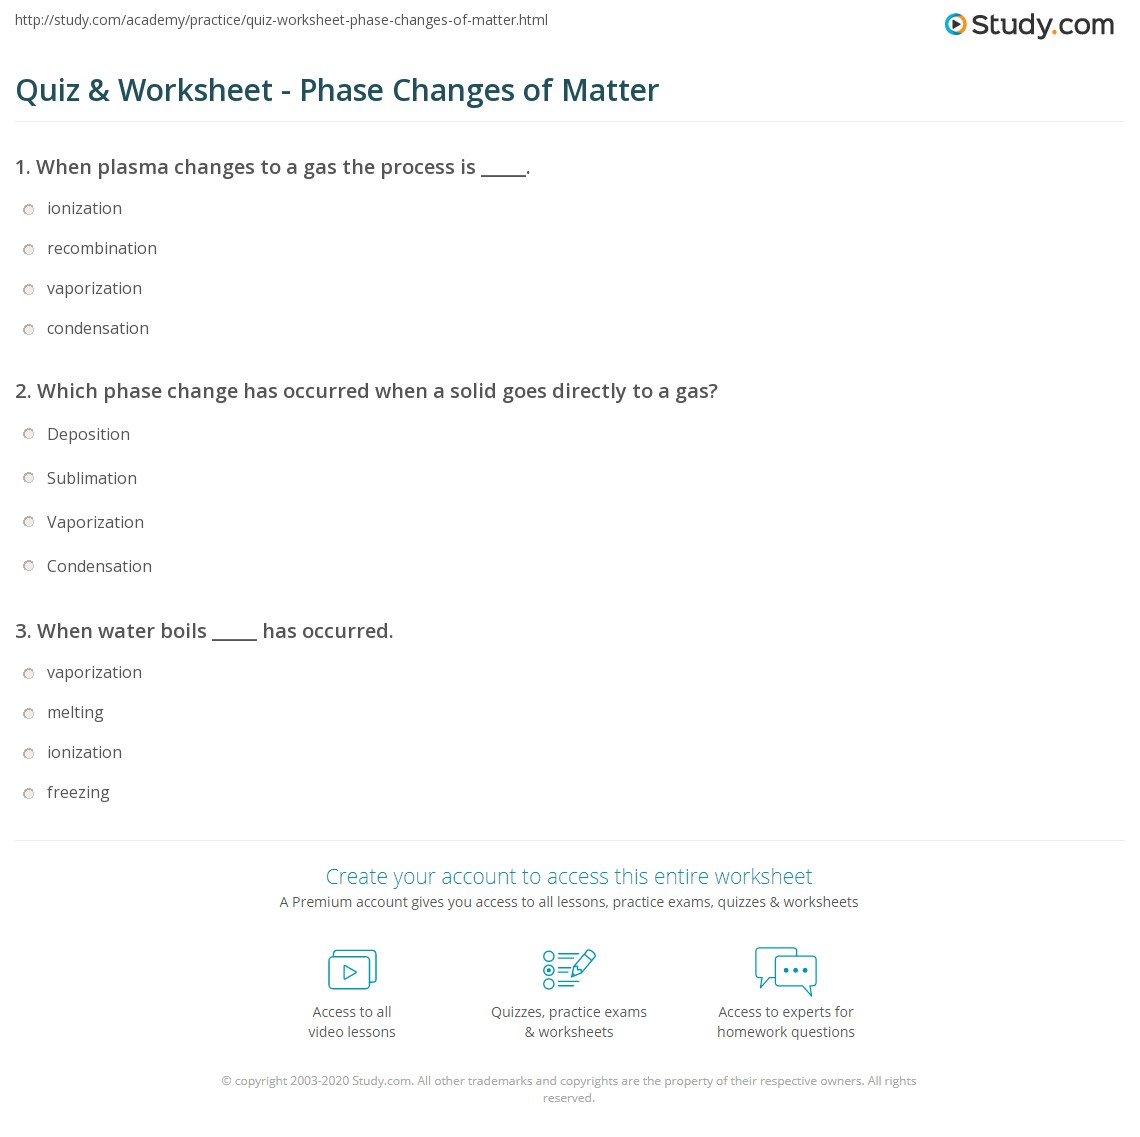 Quiz & Worksheet Phase Changes of Matter